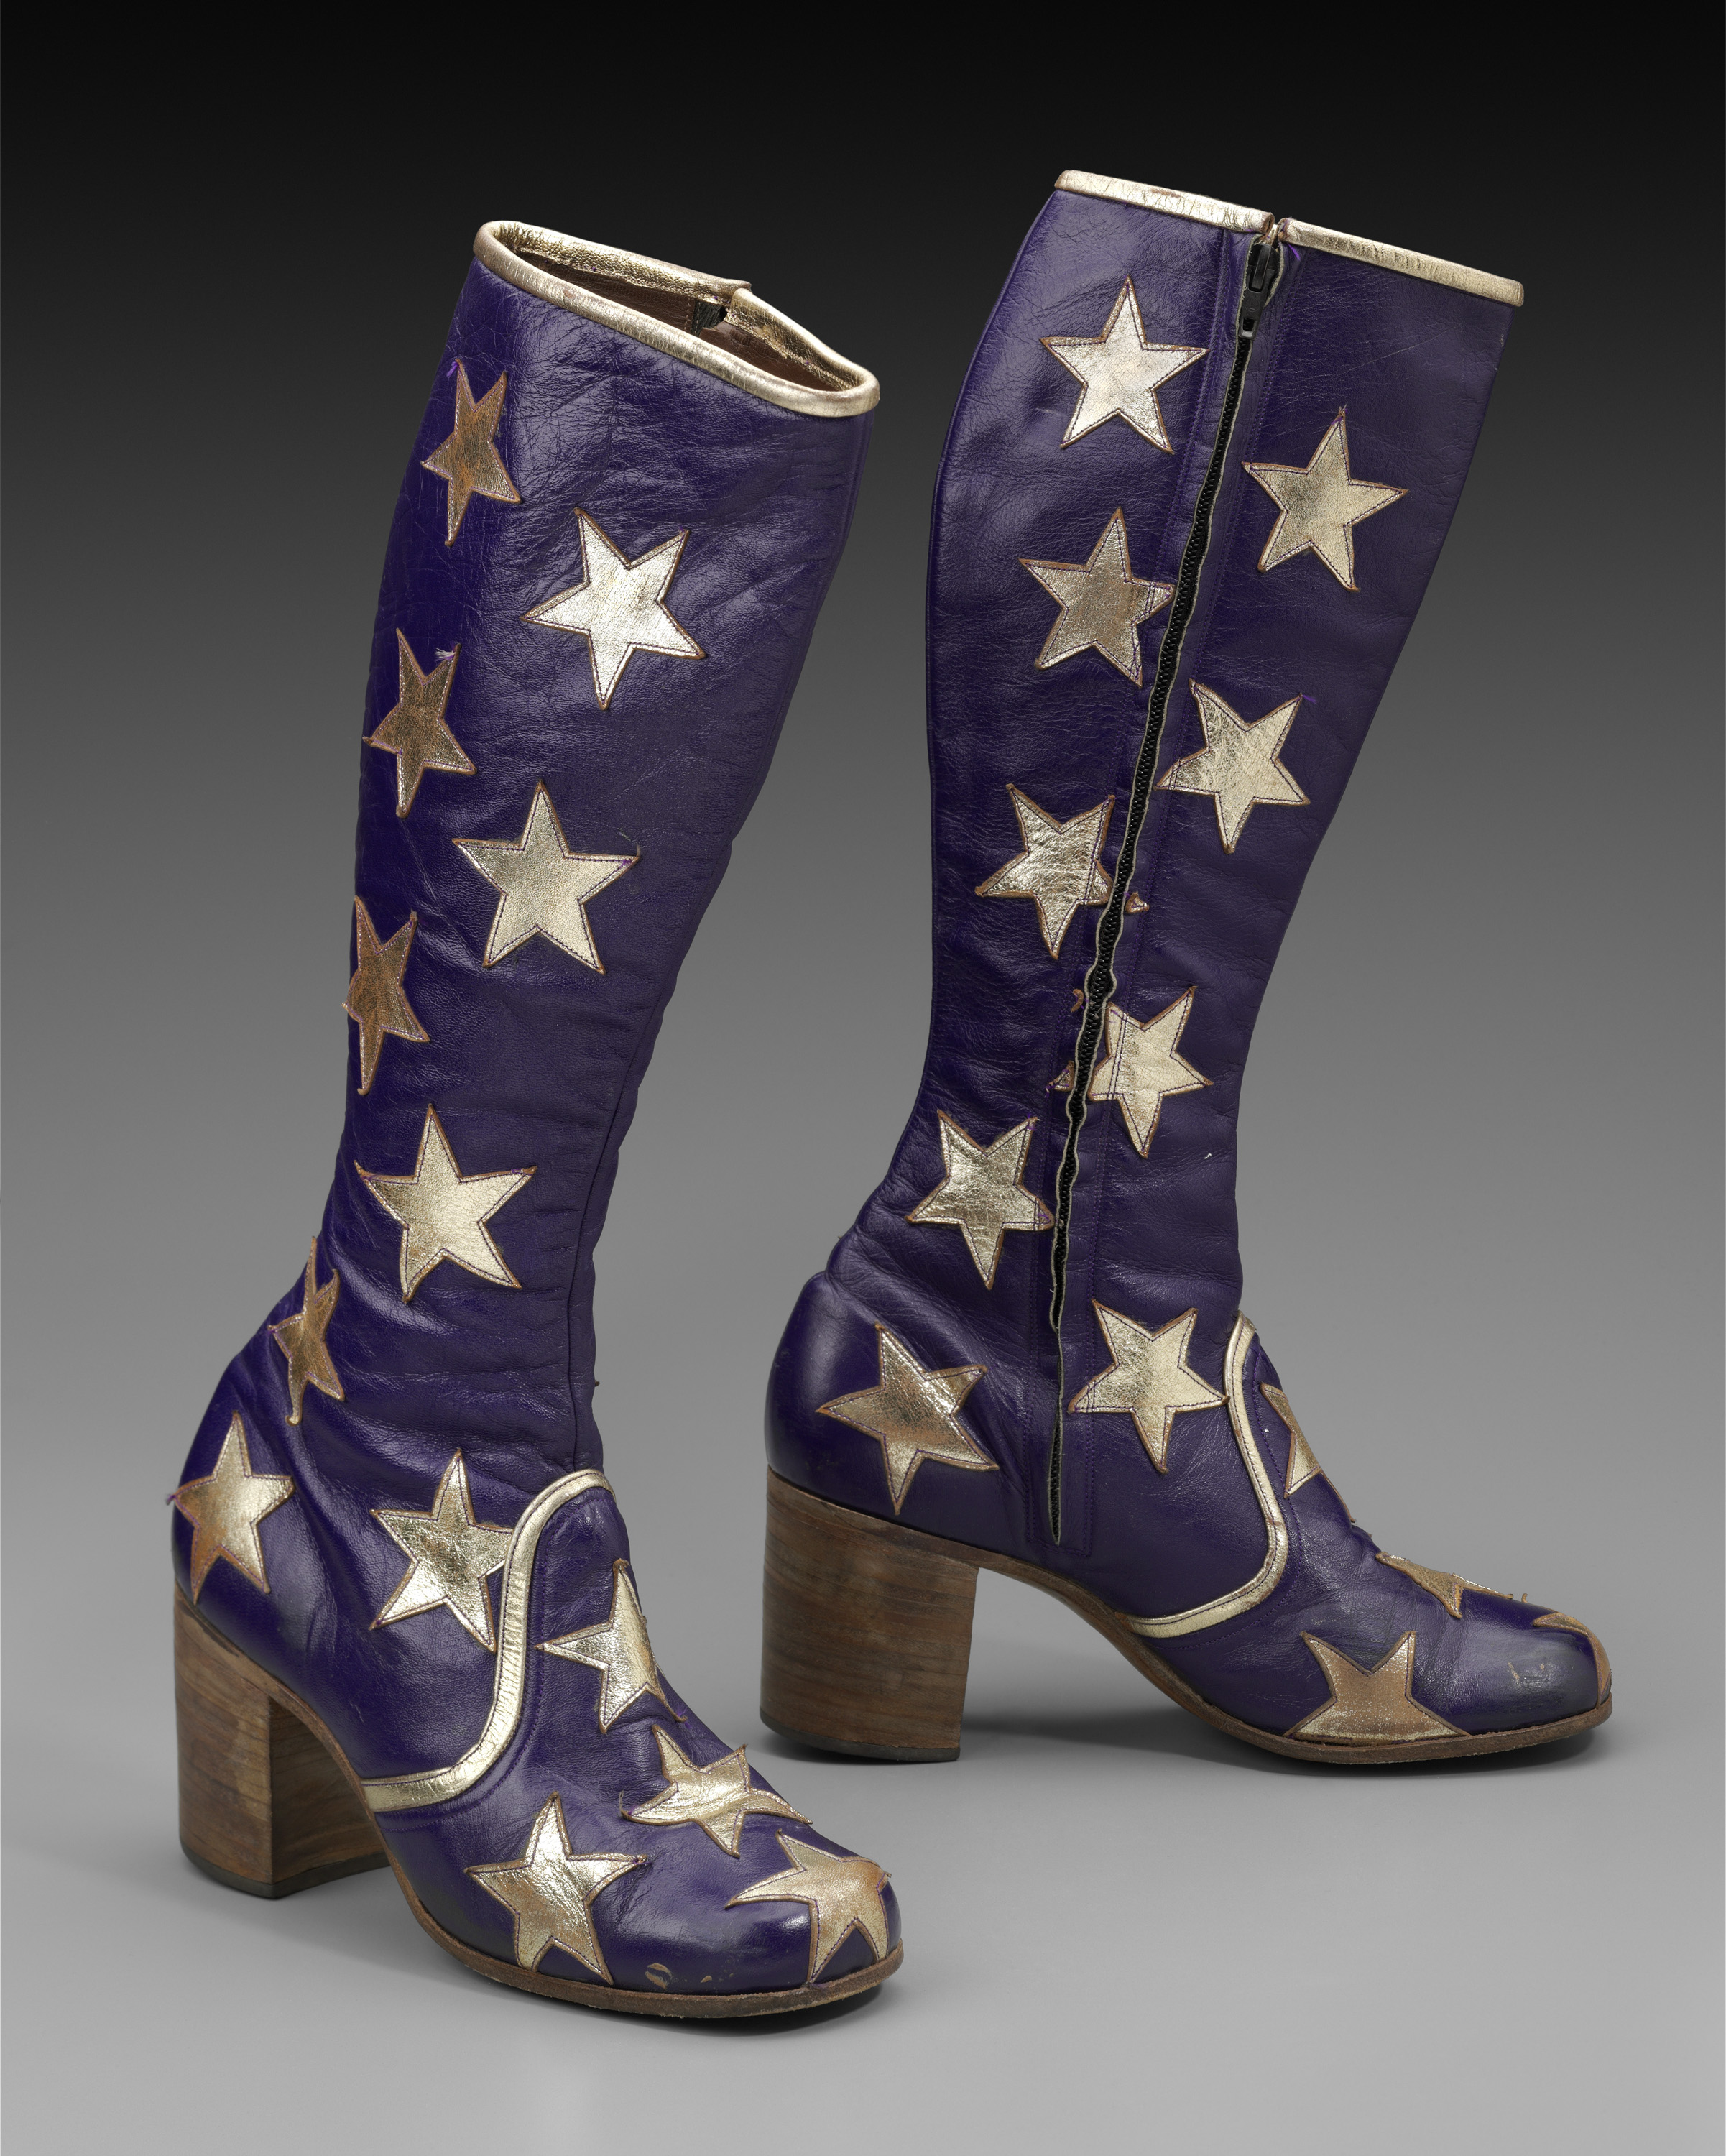 Granny Takes A Trip leather boots in blue with applied white stars.   Joe Cocker took the stage wearing a similar pair during his famous appearance at Woodstock. From the Museum of Fine Arts, Boston (MFA) Hippie Chic exhibition, 2013.